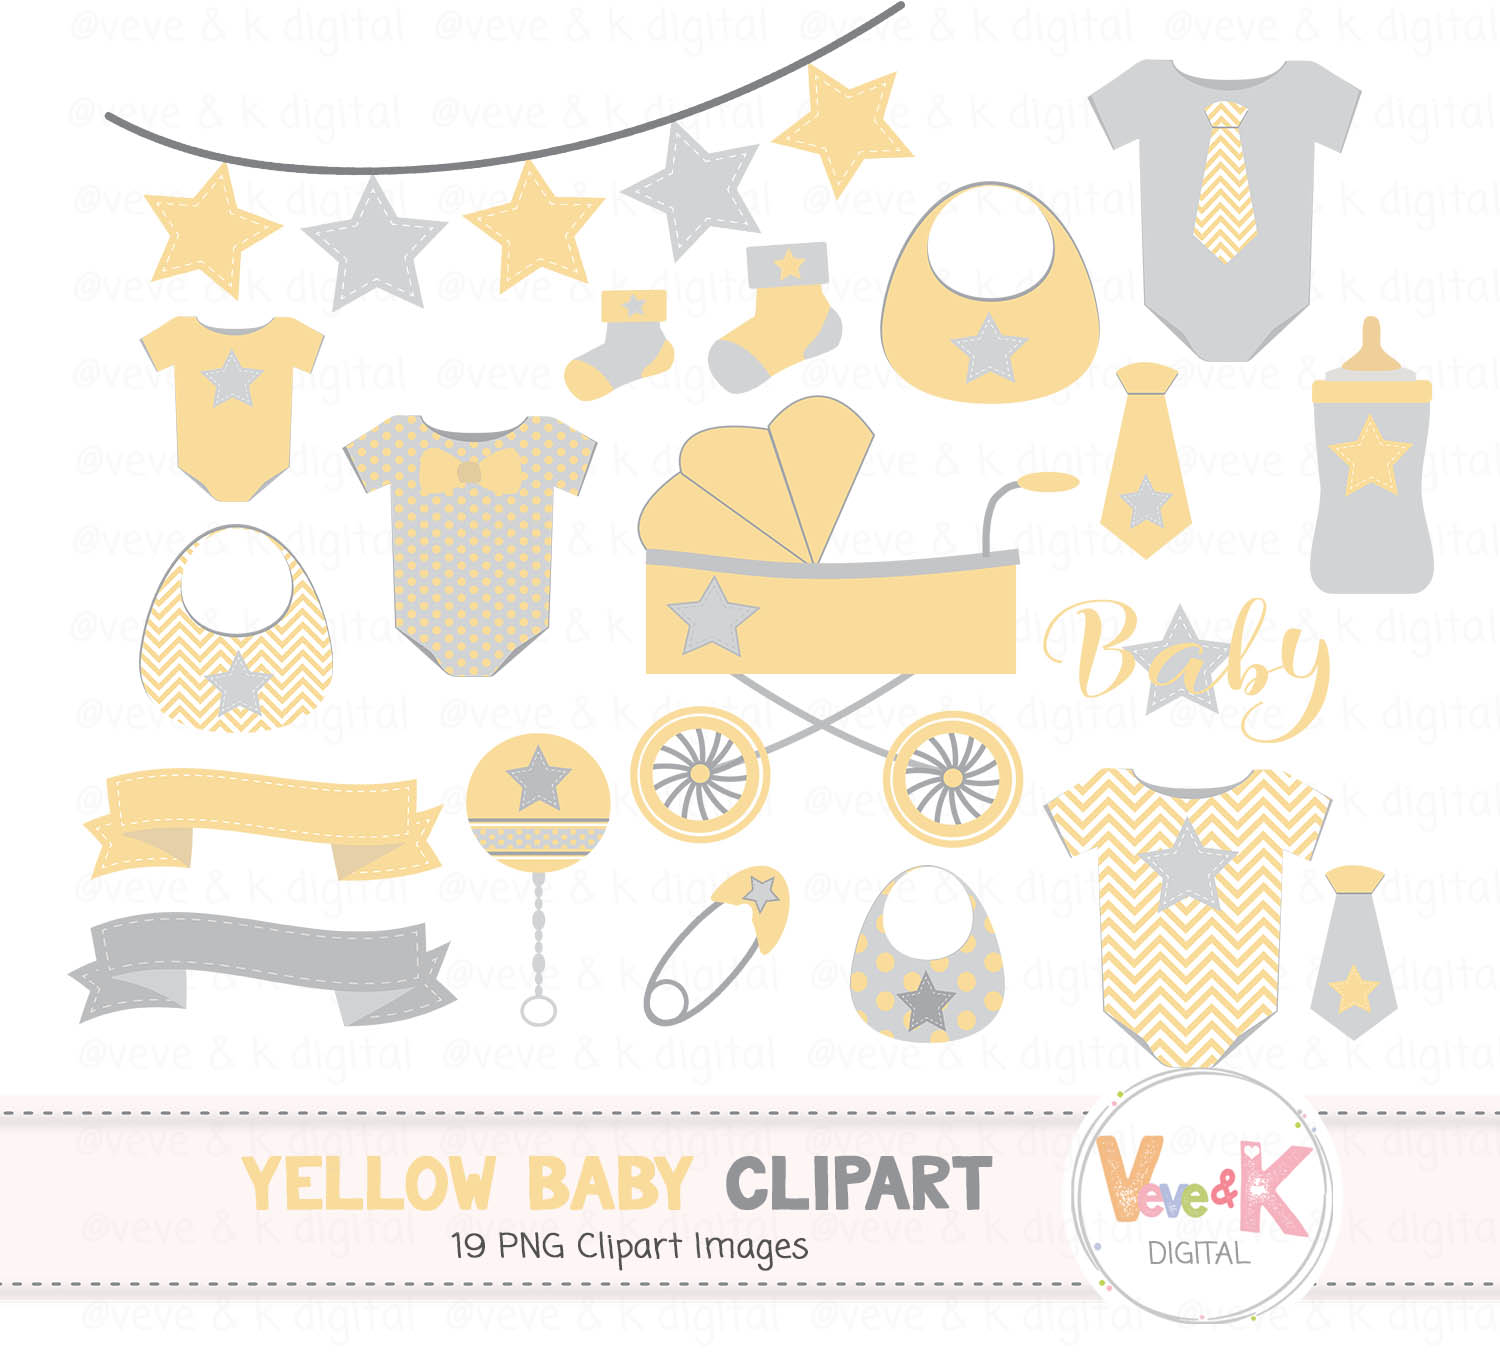 Yellow Baby Clipart Gender Neutral Baby Clipart Baby Shower